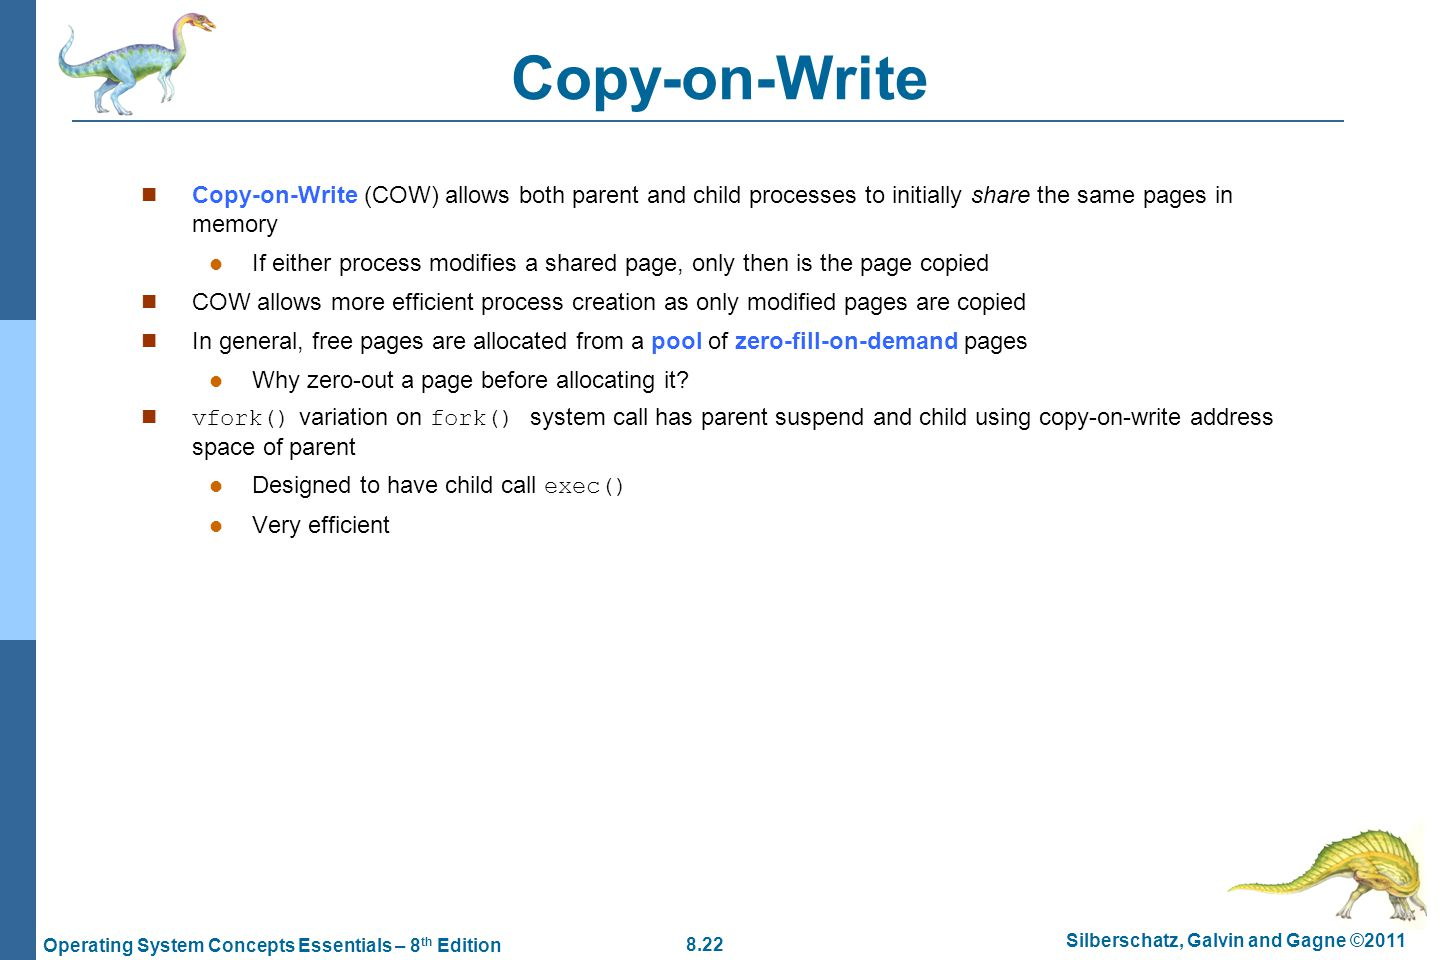 Copy-on-Write Copy-on-Write (COW) allows both parent and child processes to initially share the same pages in memory.